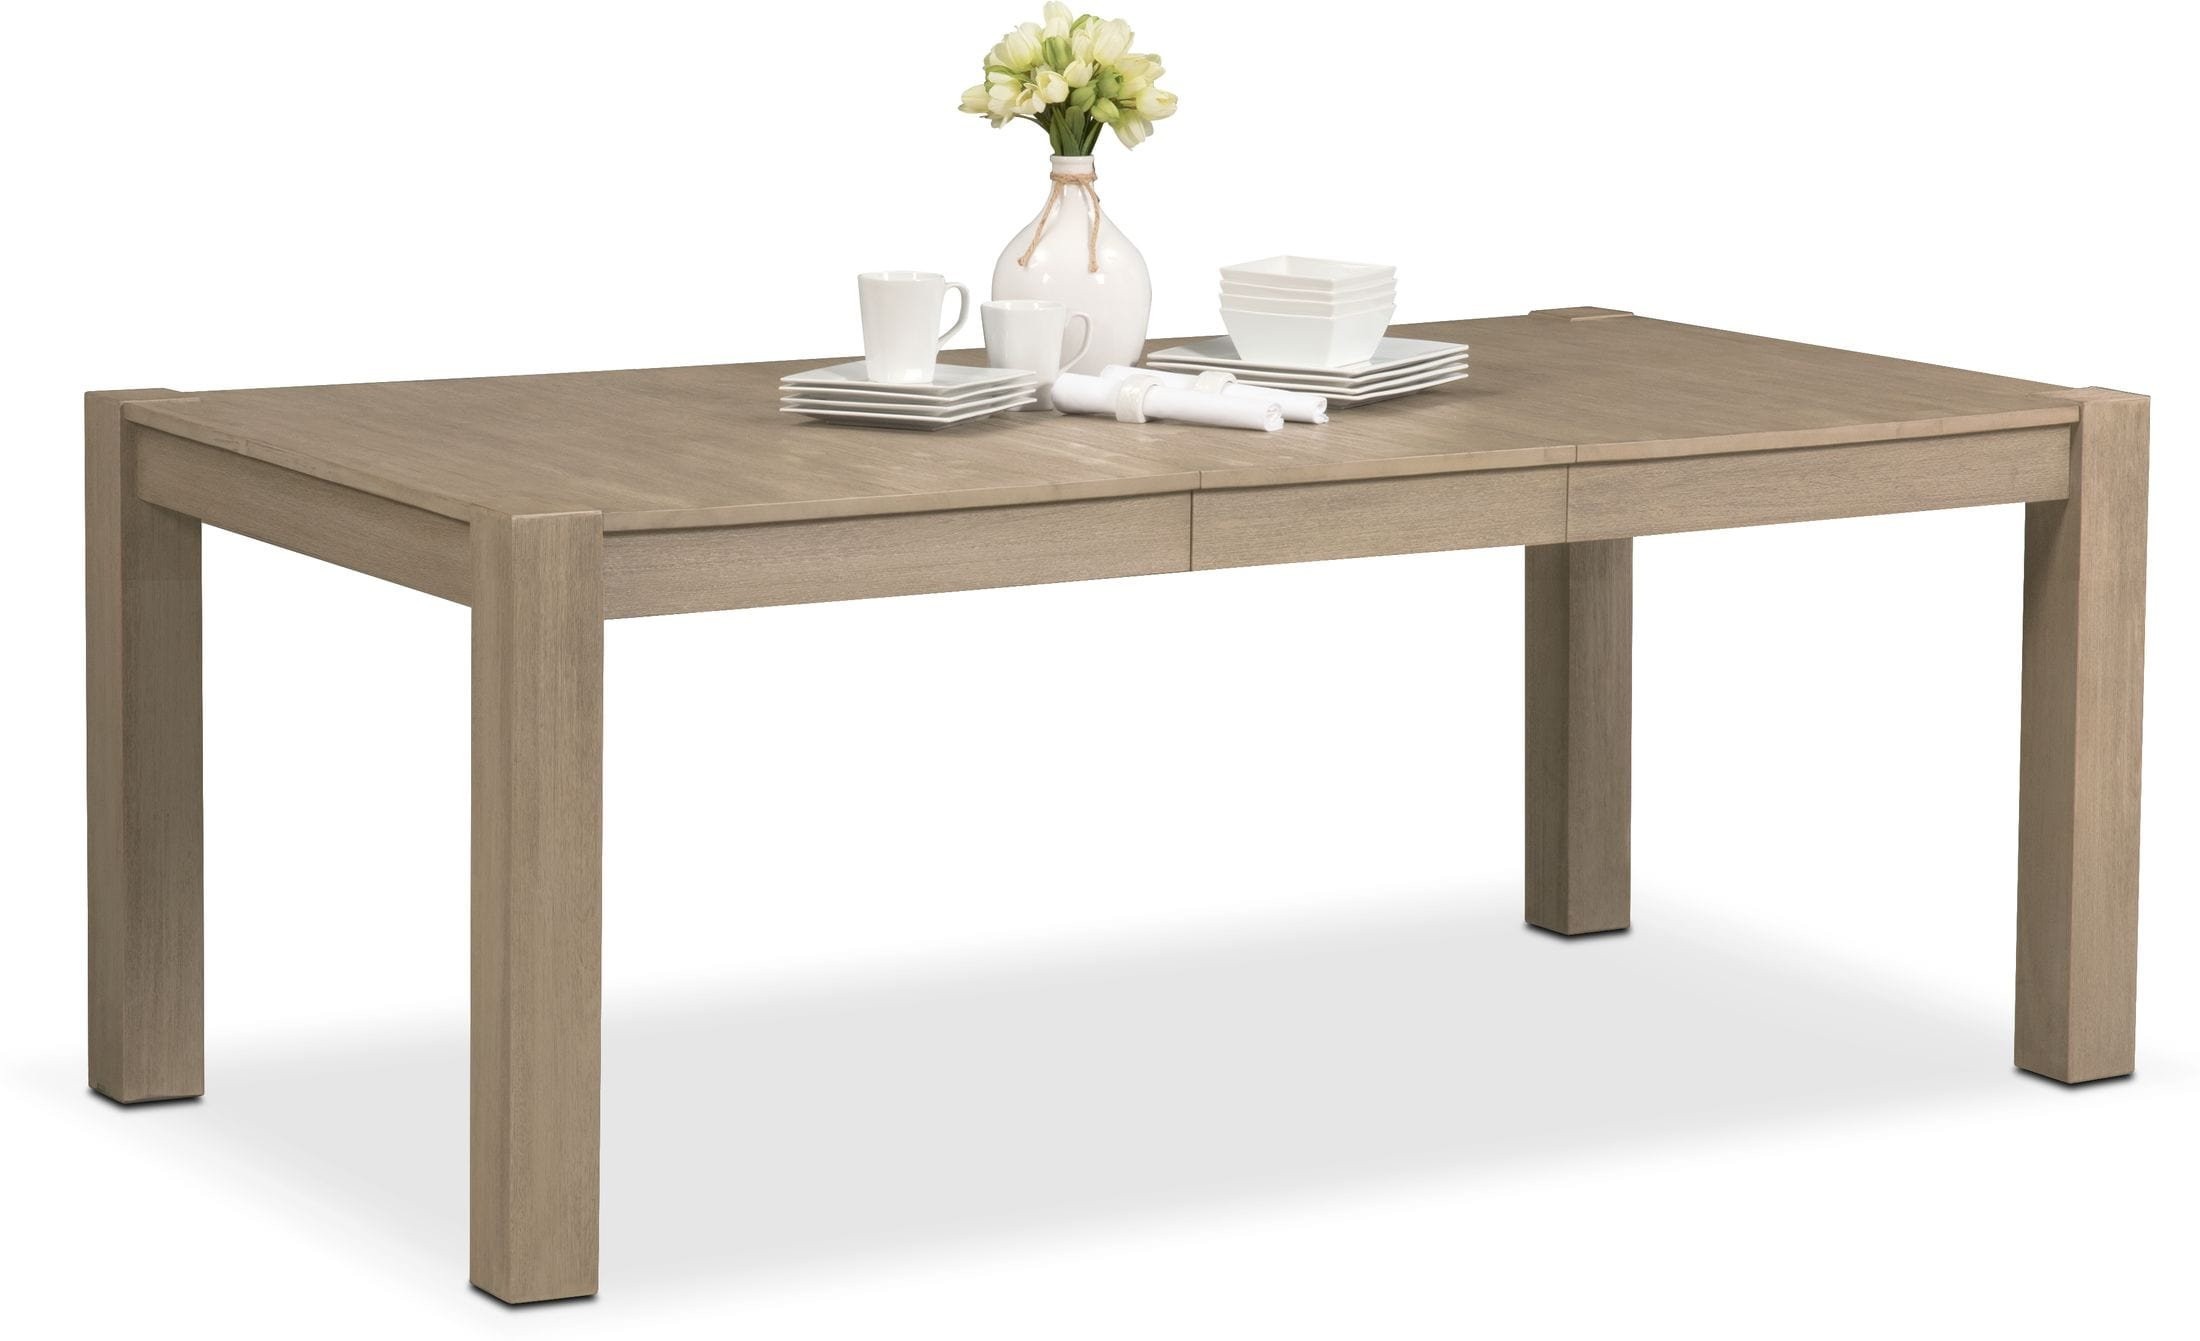 Dining Room Furniture - Tribeca Dining Table